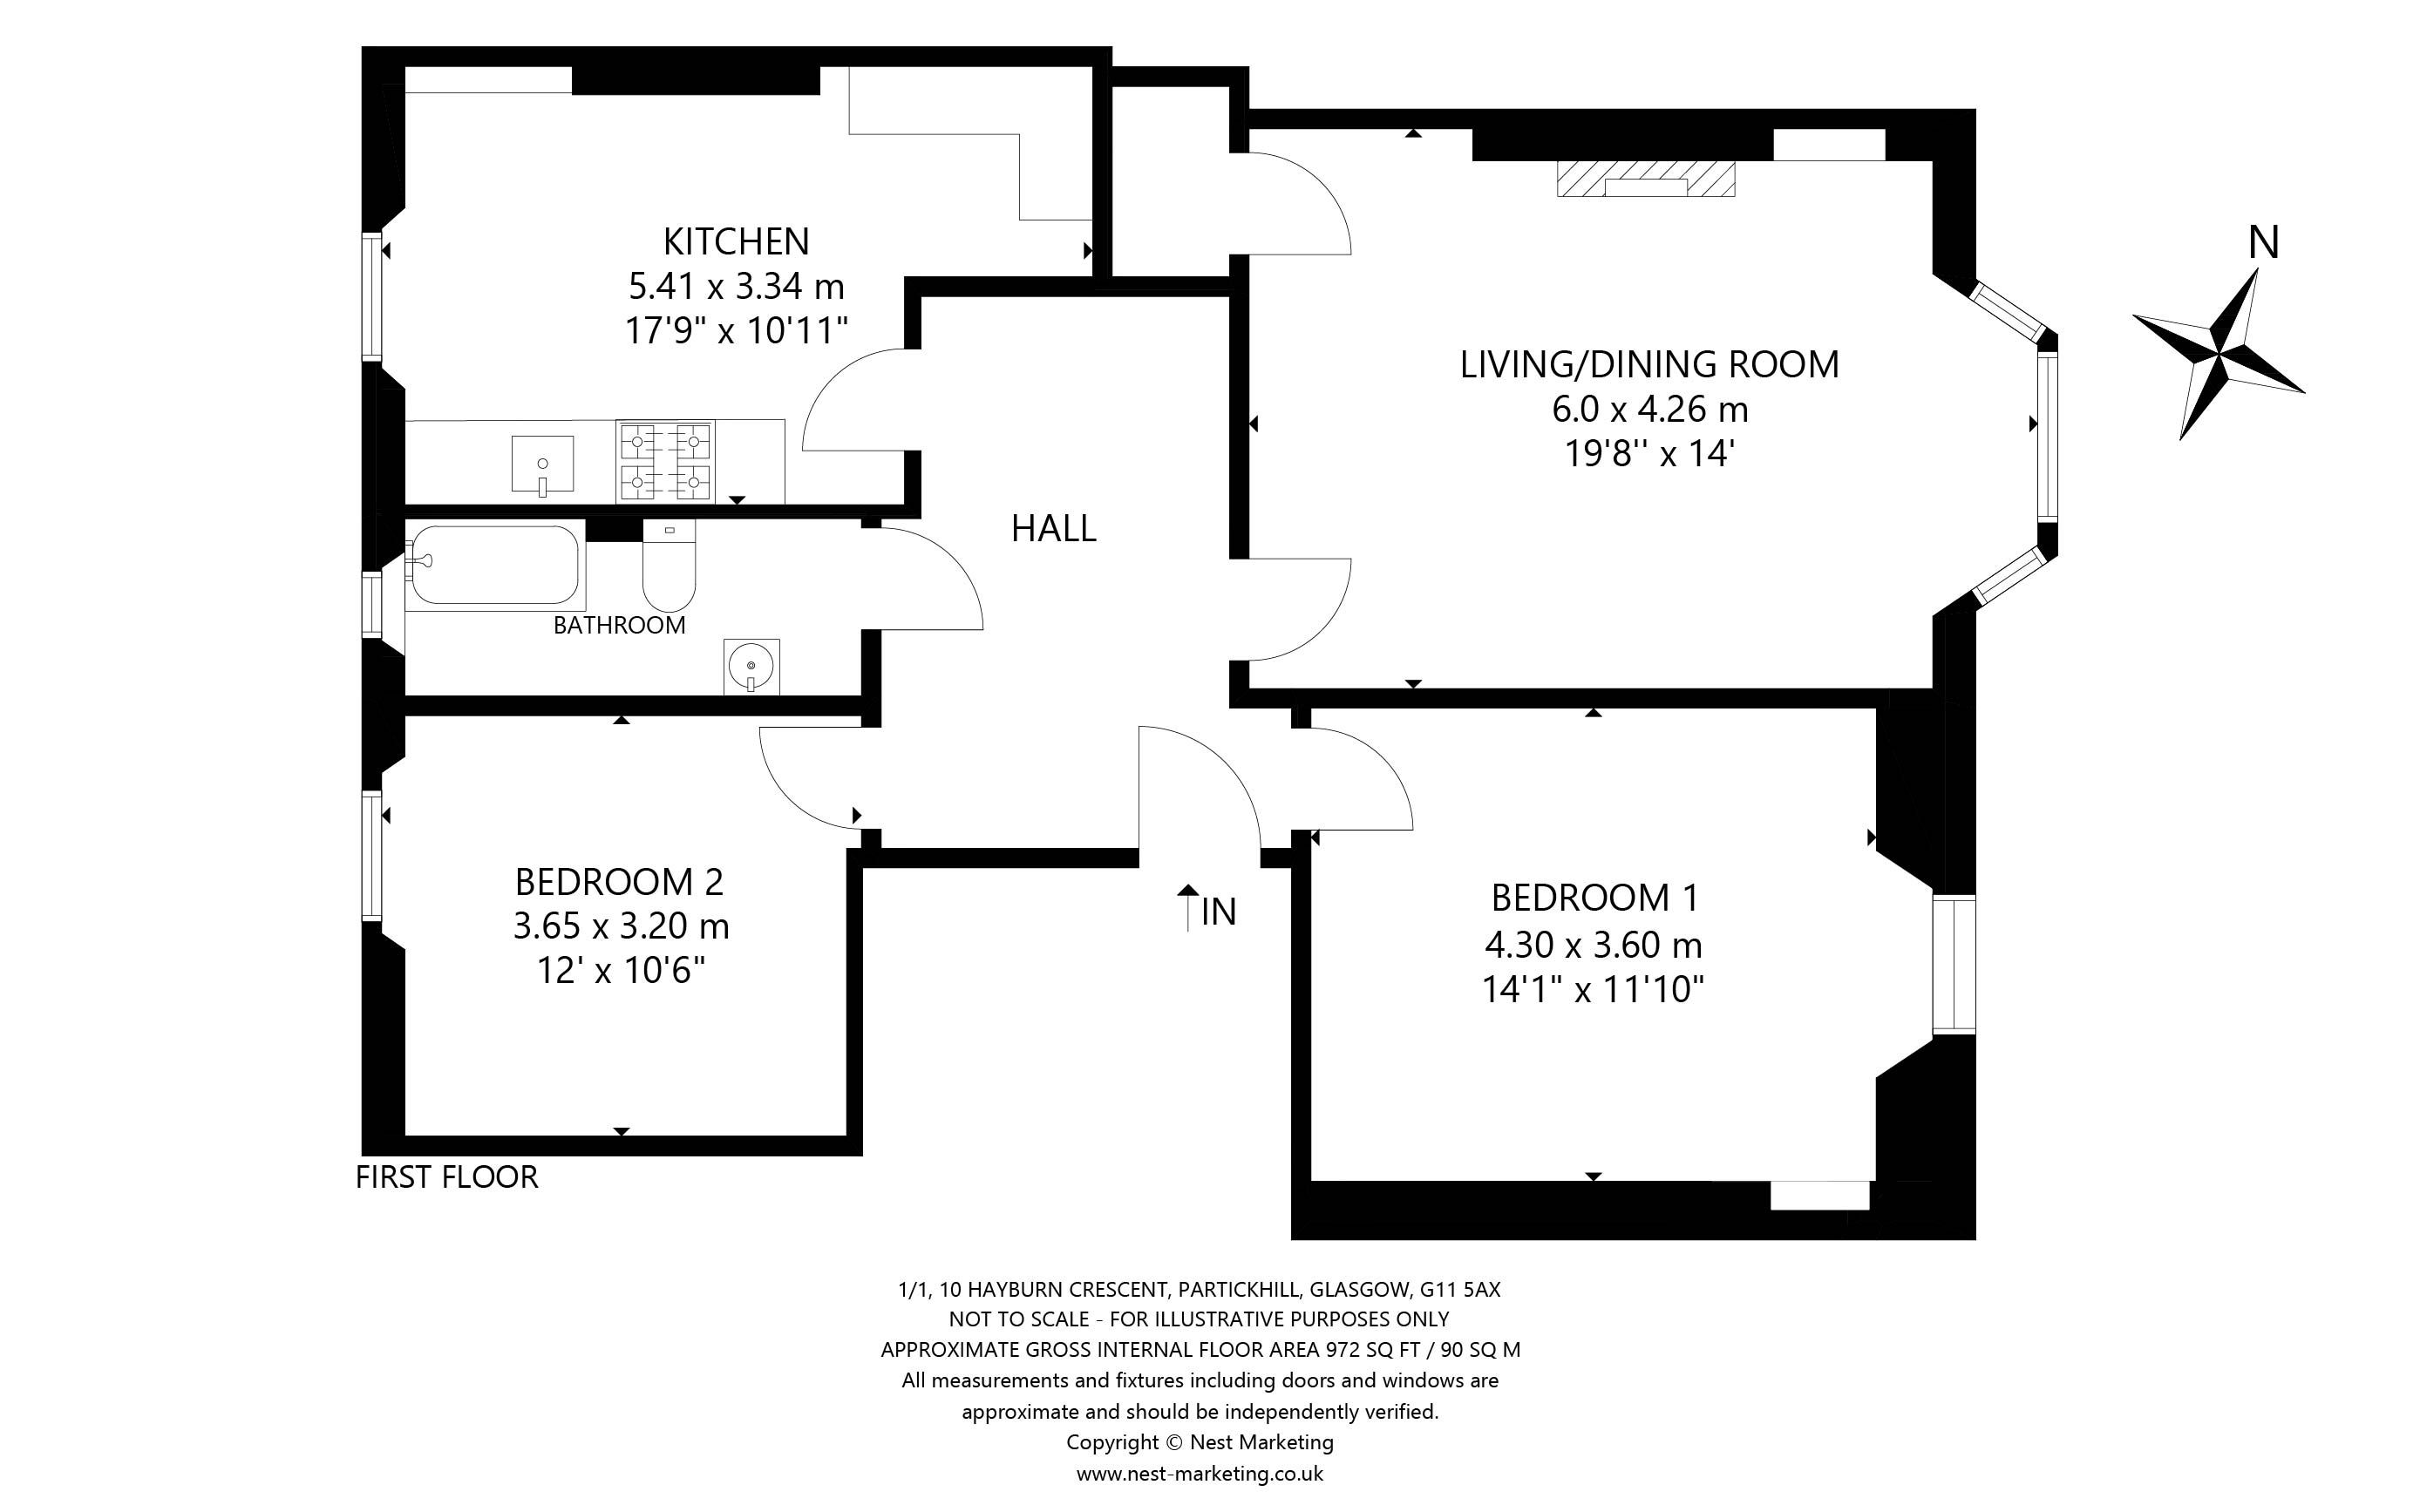 Floorplans for Hayburn Crescent, Partickhill, Glasgow, G11